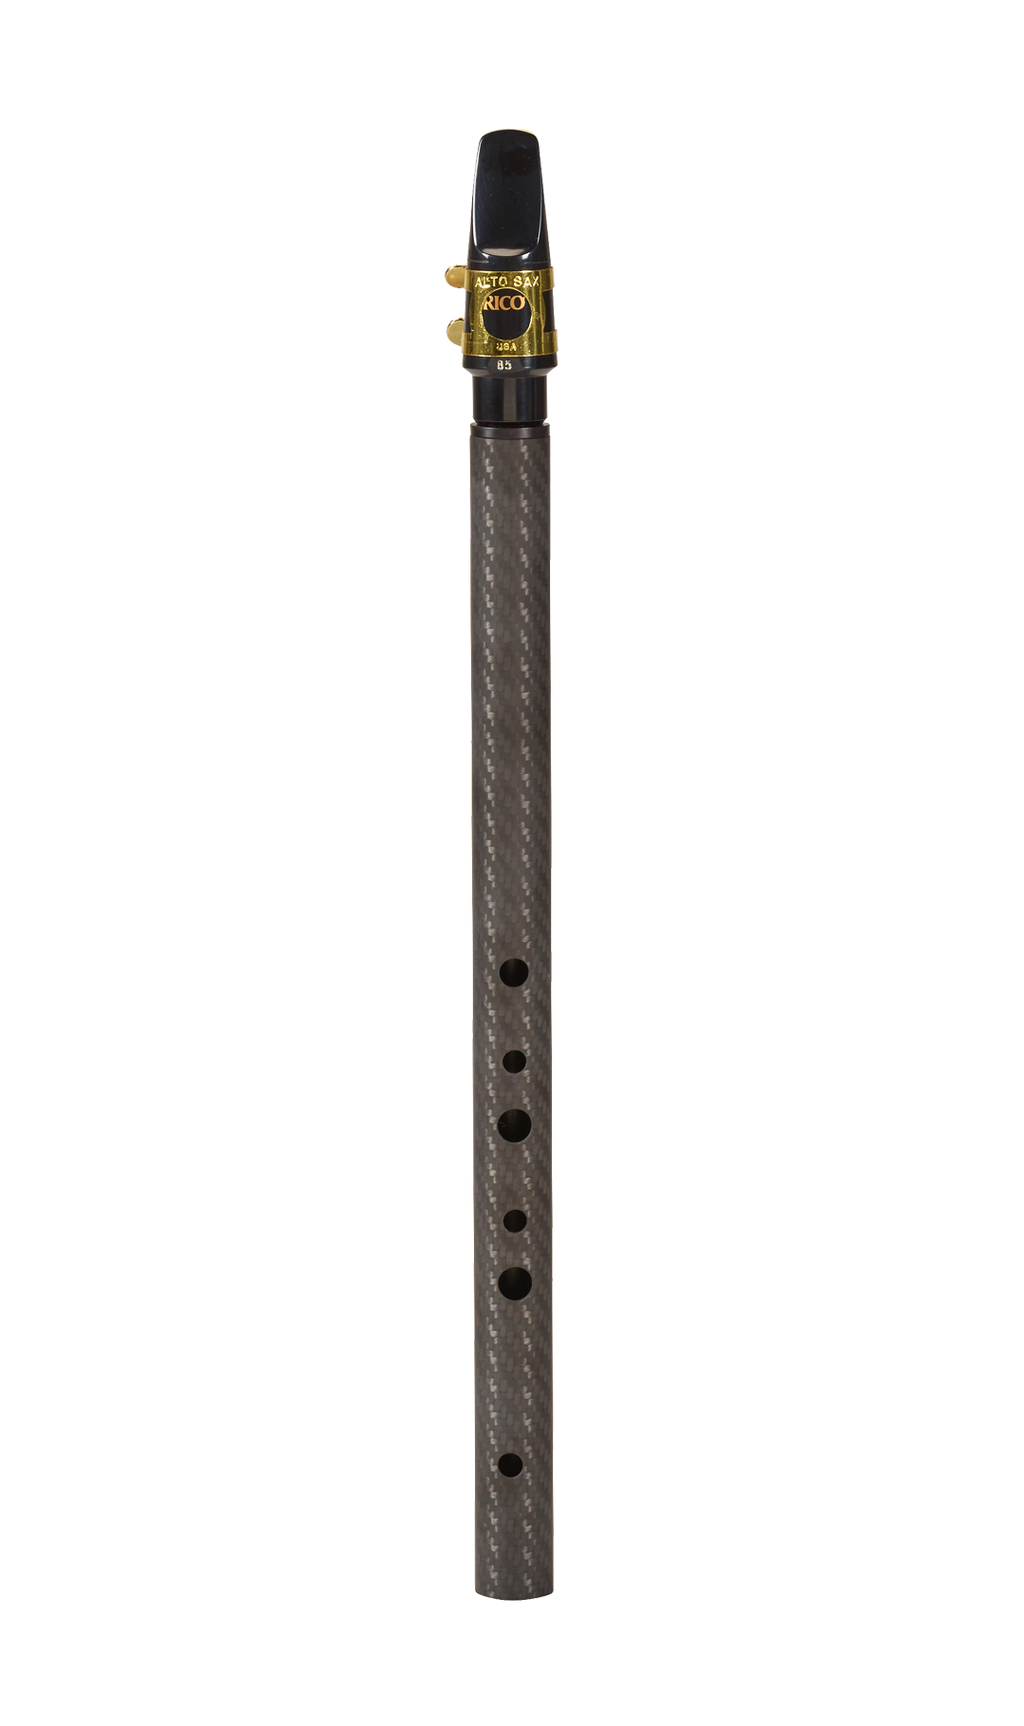 AHAVA RABA CLARINET Carbon Fiber Body